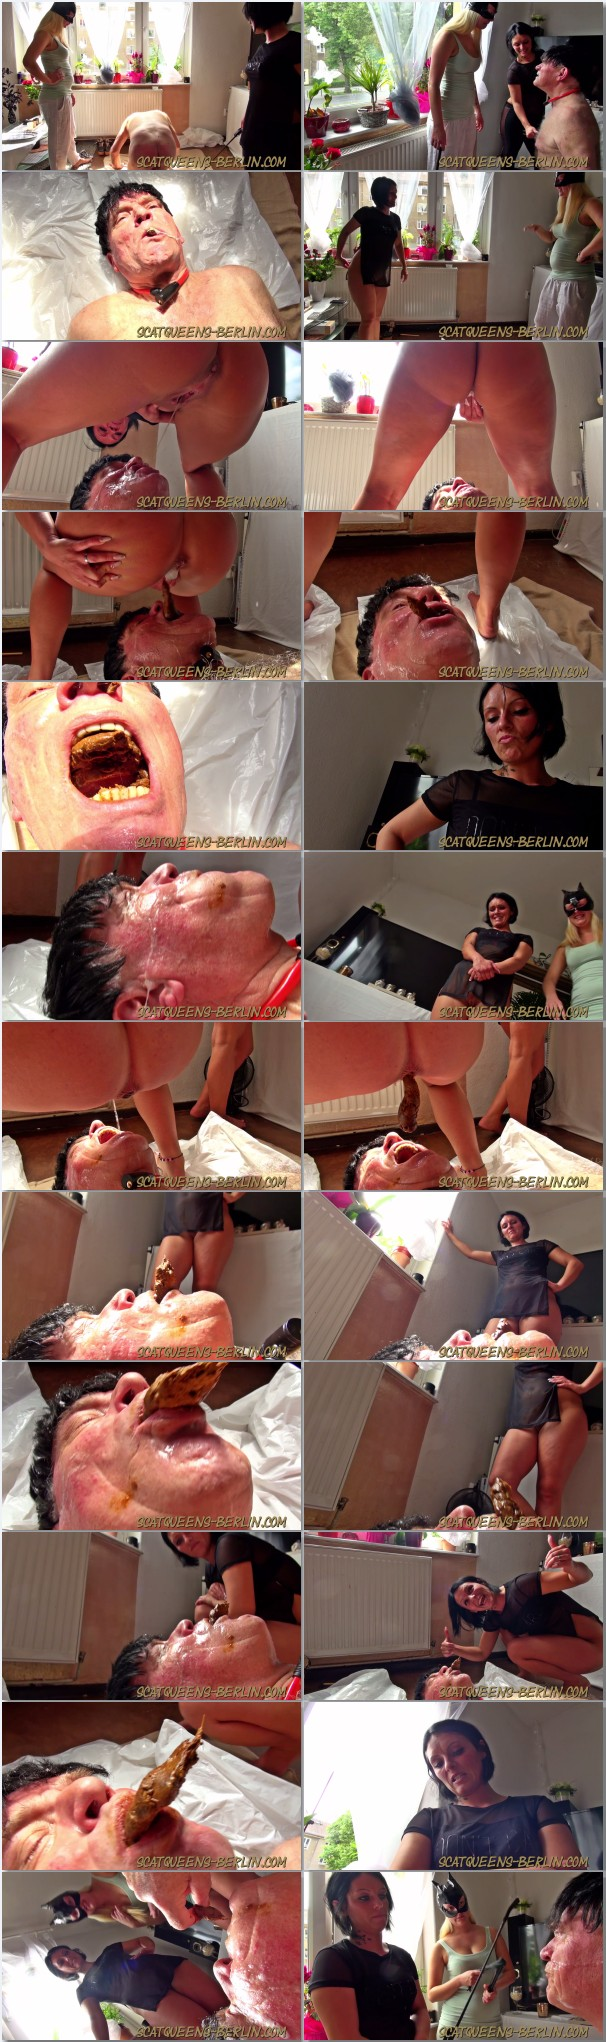 femdom german scat feeding videos. Two experienced strict german scat  mistresses are humiliating a toilet slave, peeing and pooping into his  mouth making ...